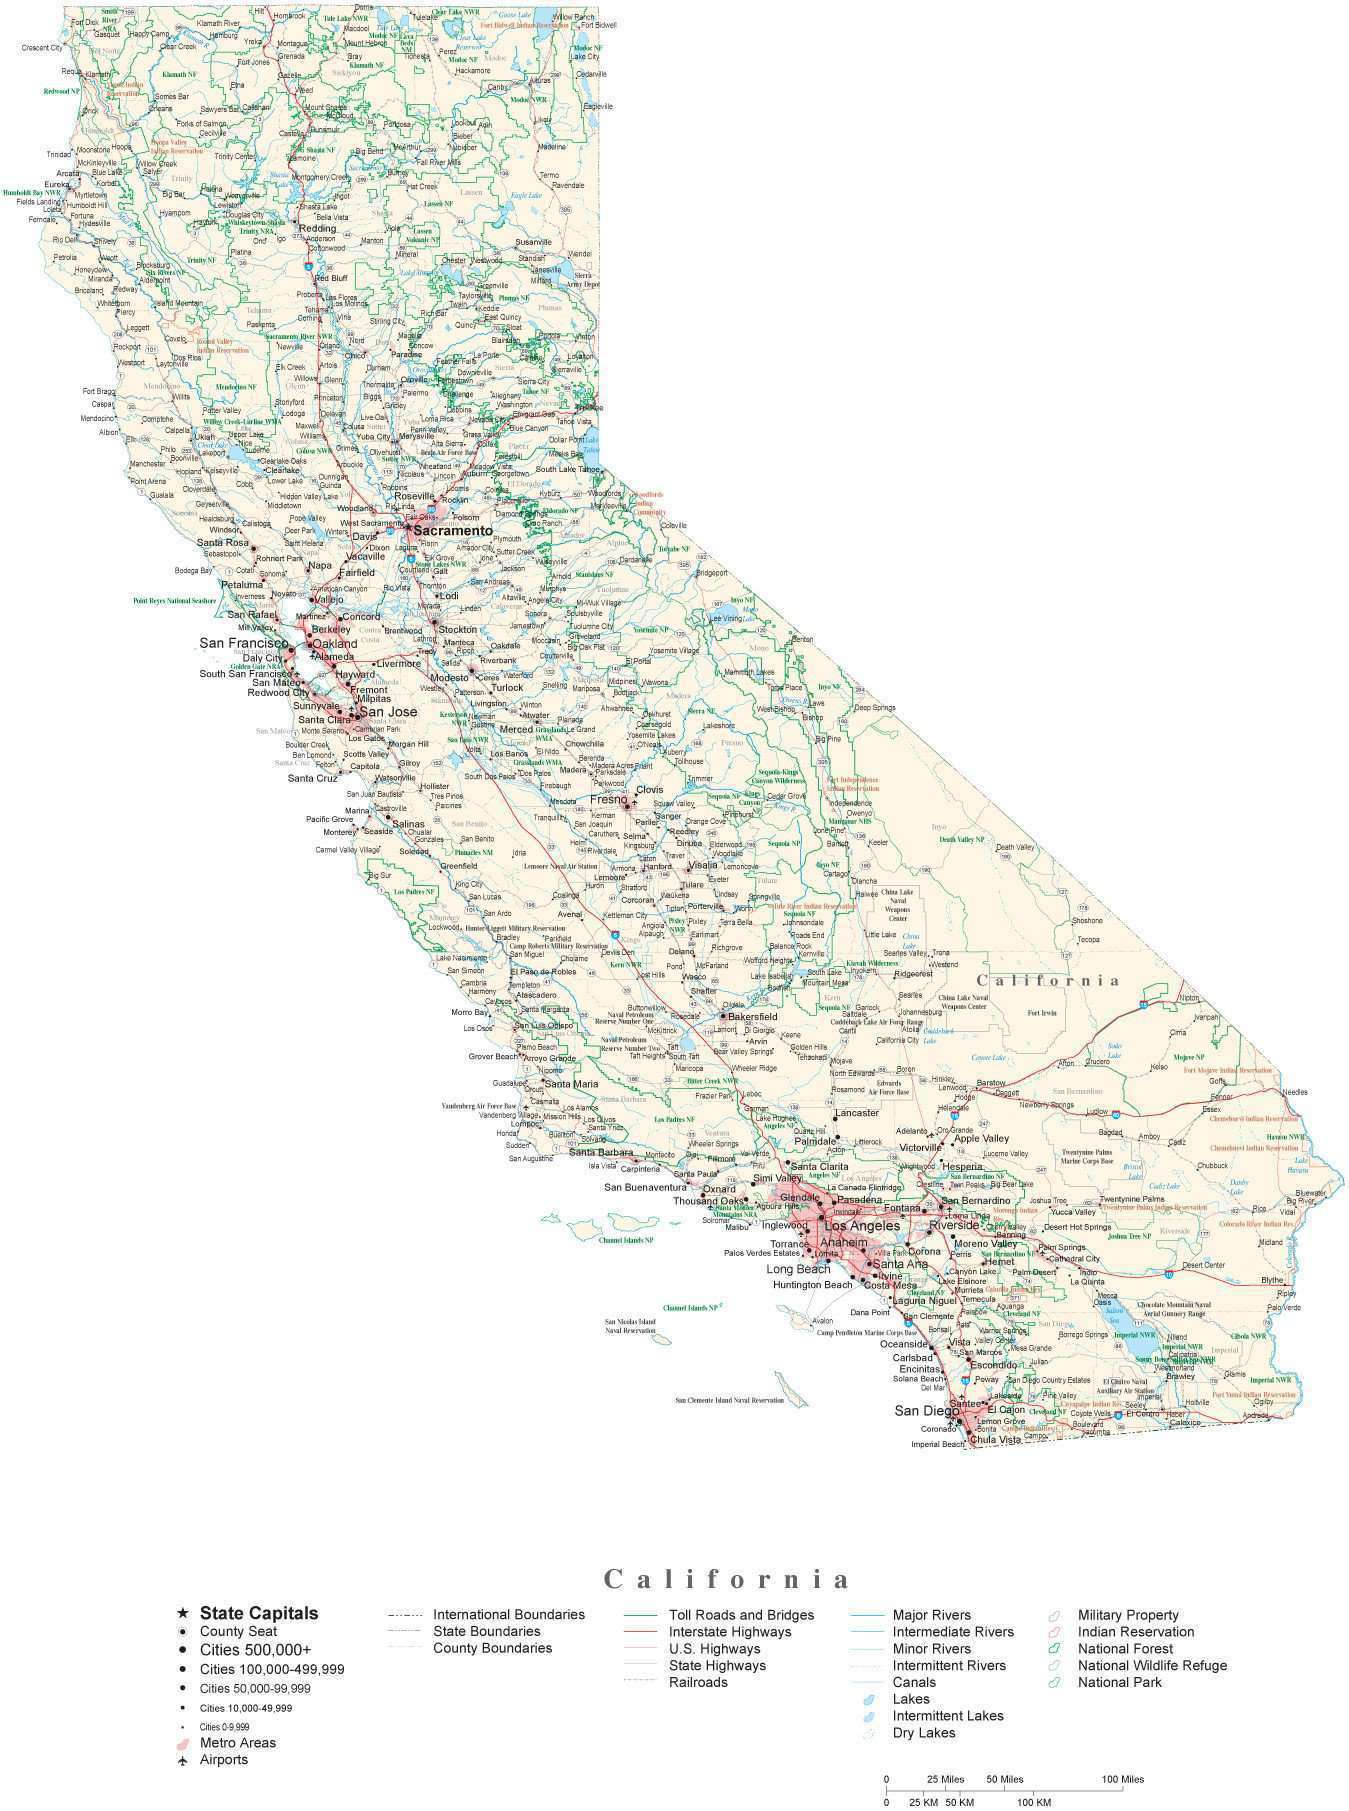 California Detailed Cut Out Style State Map In Adobe Illustrator